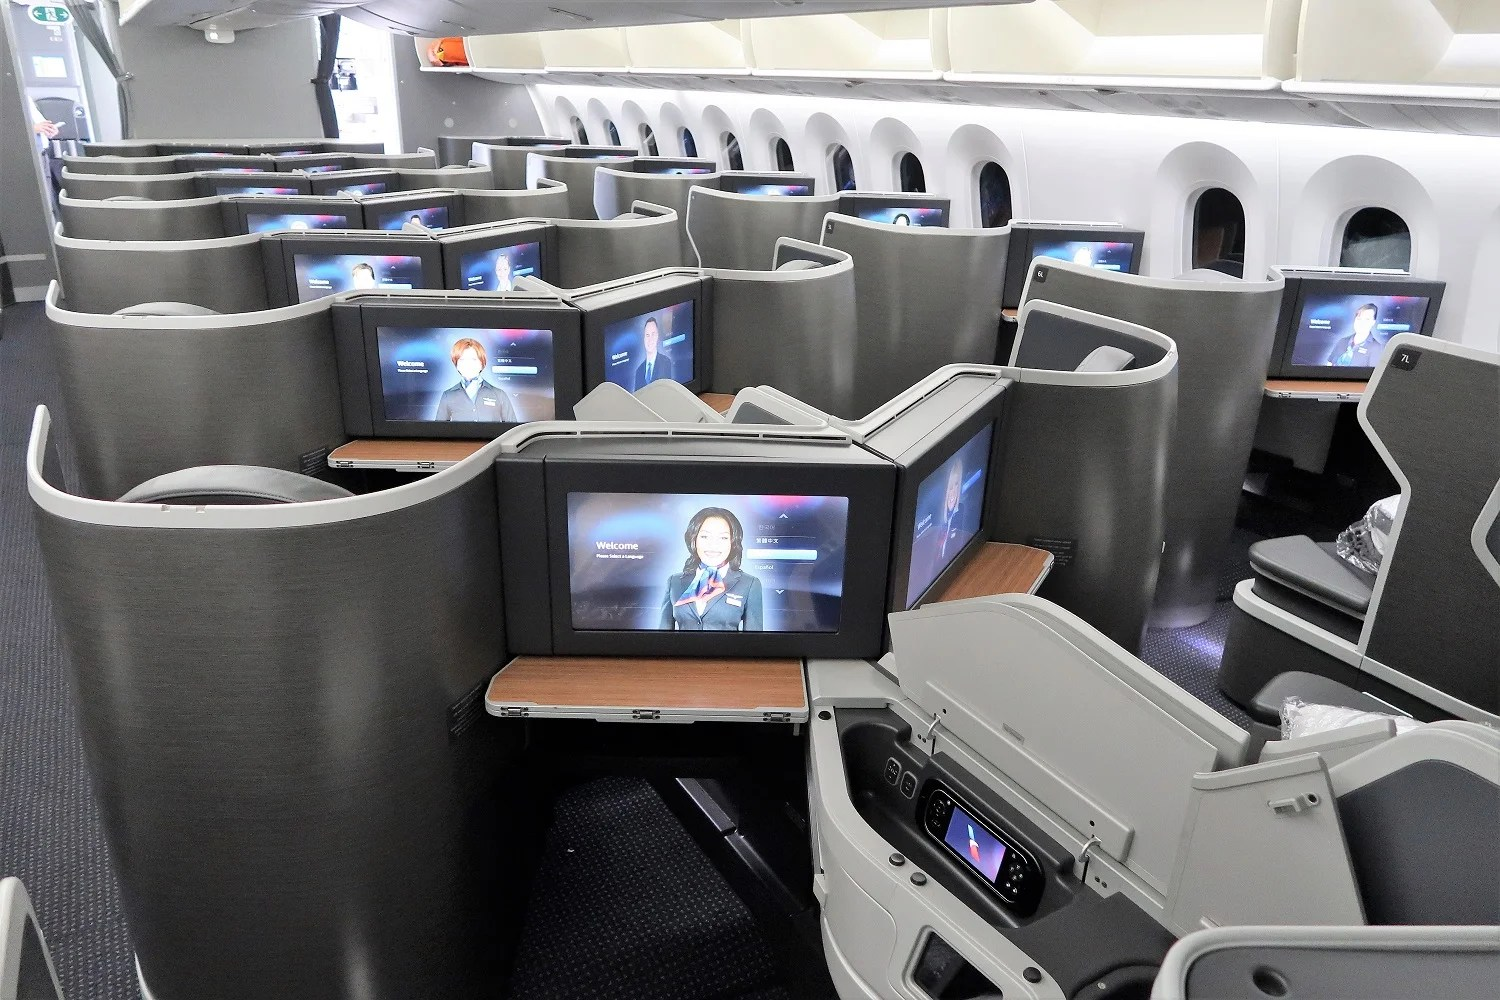 What's on American Airlines Inflight Entertainment in May 2019